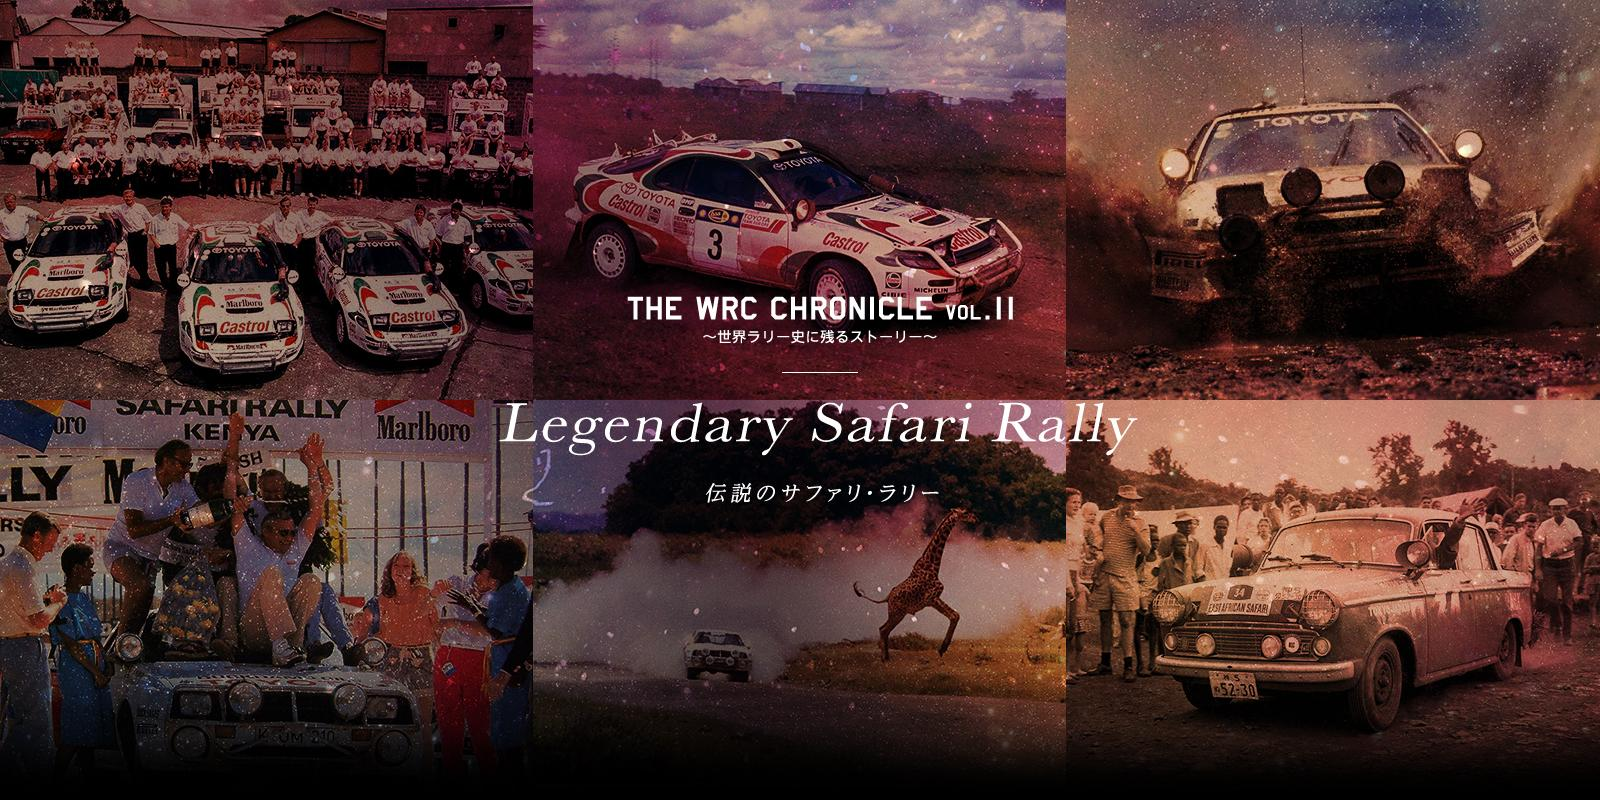 Legendary Safari Rally〜伝説のサファリ・ラリー〜 | The WRC Chronicle vol.11